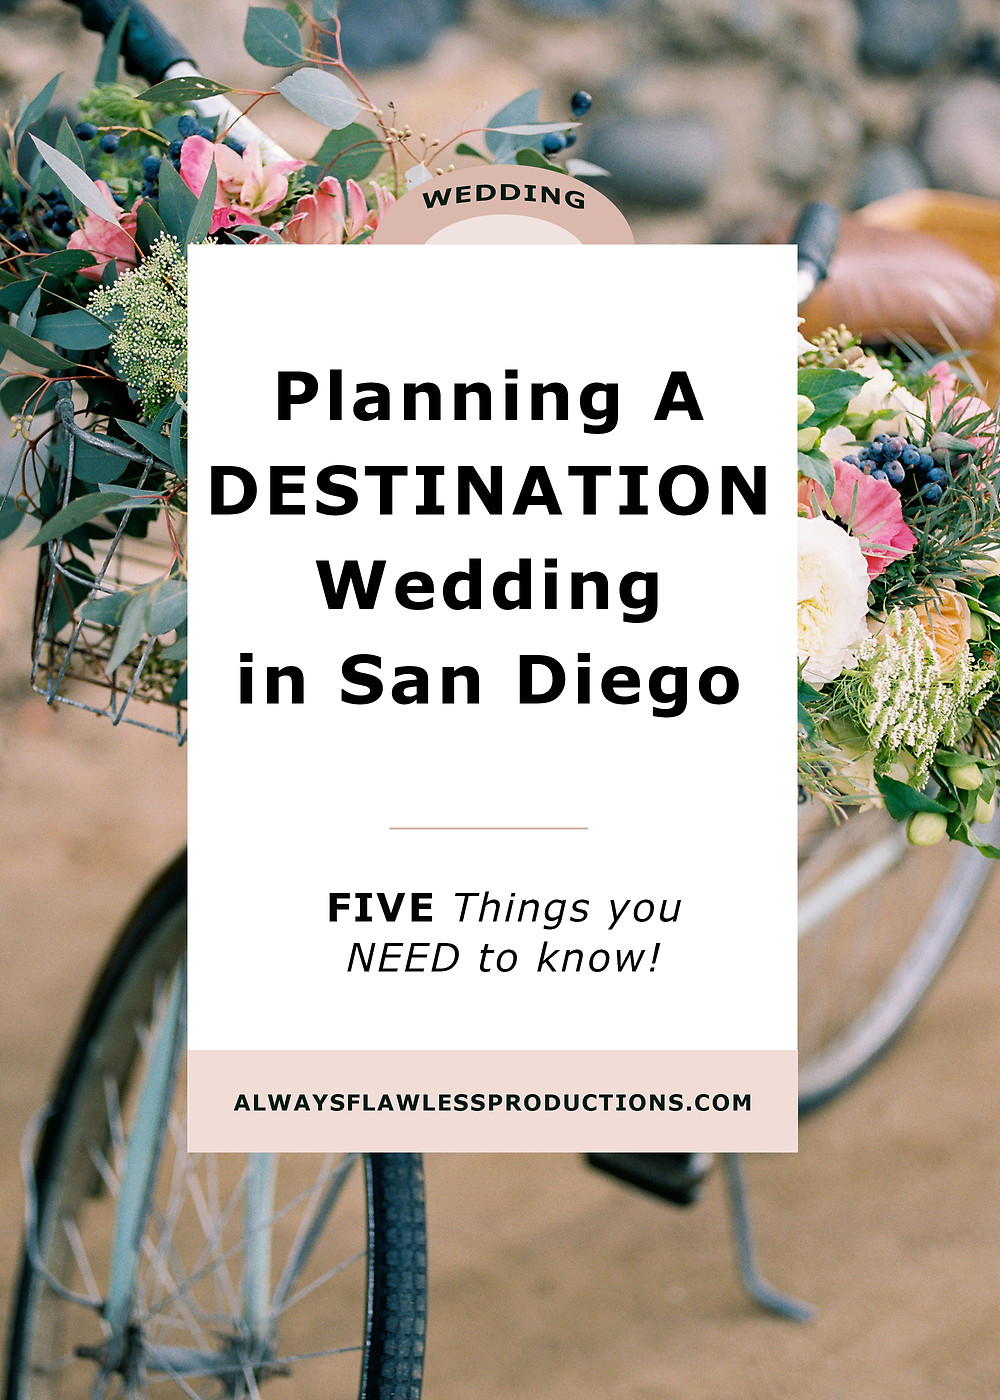 Destination Weddings - Planning A San Diego Wedding